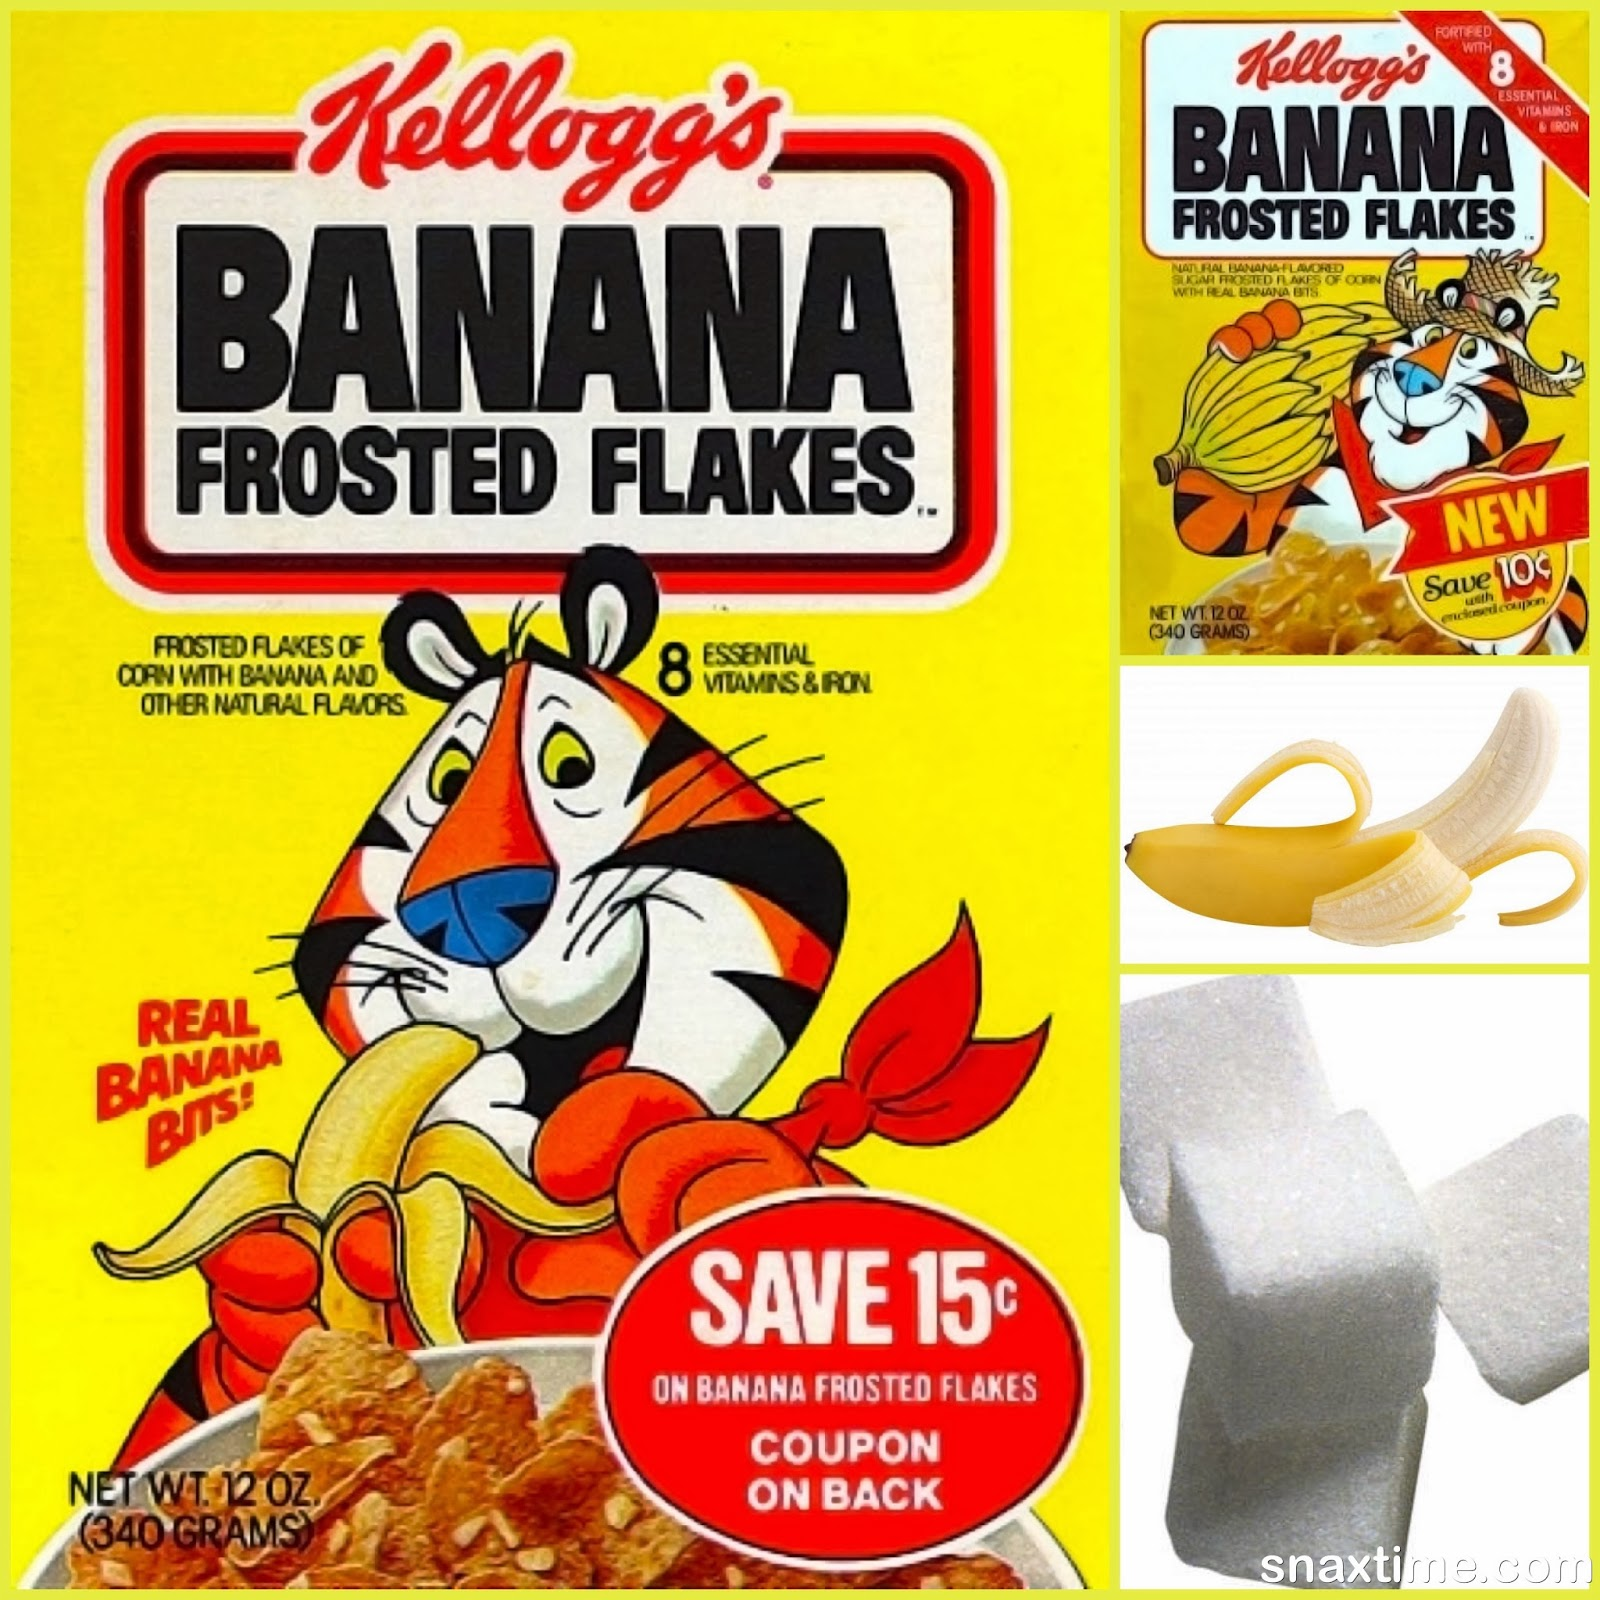 Kellogg's Banana Frosted Flakes: Gr-r-reat 80s Cereal